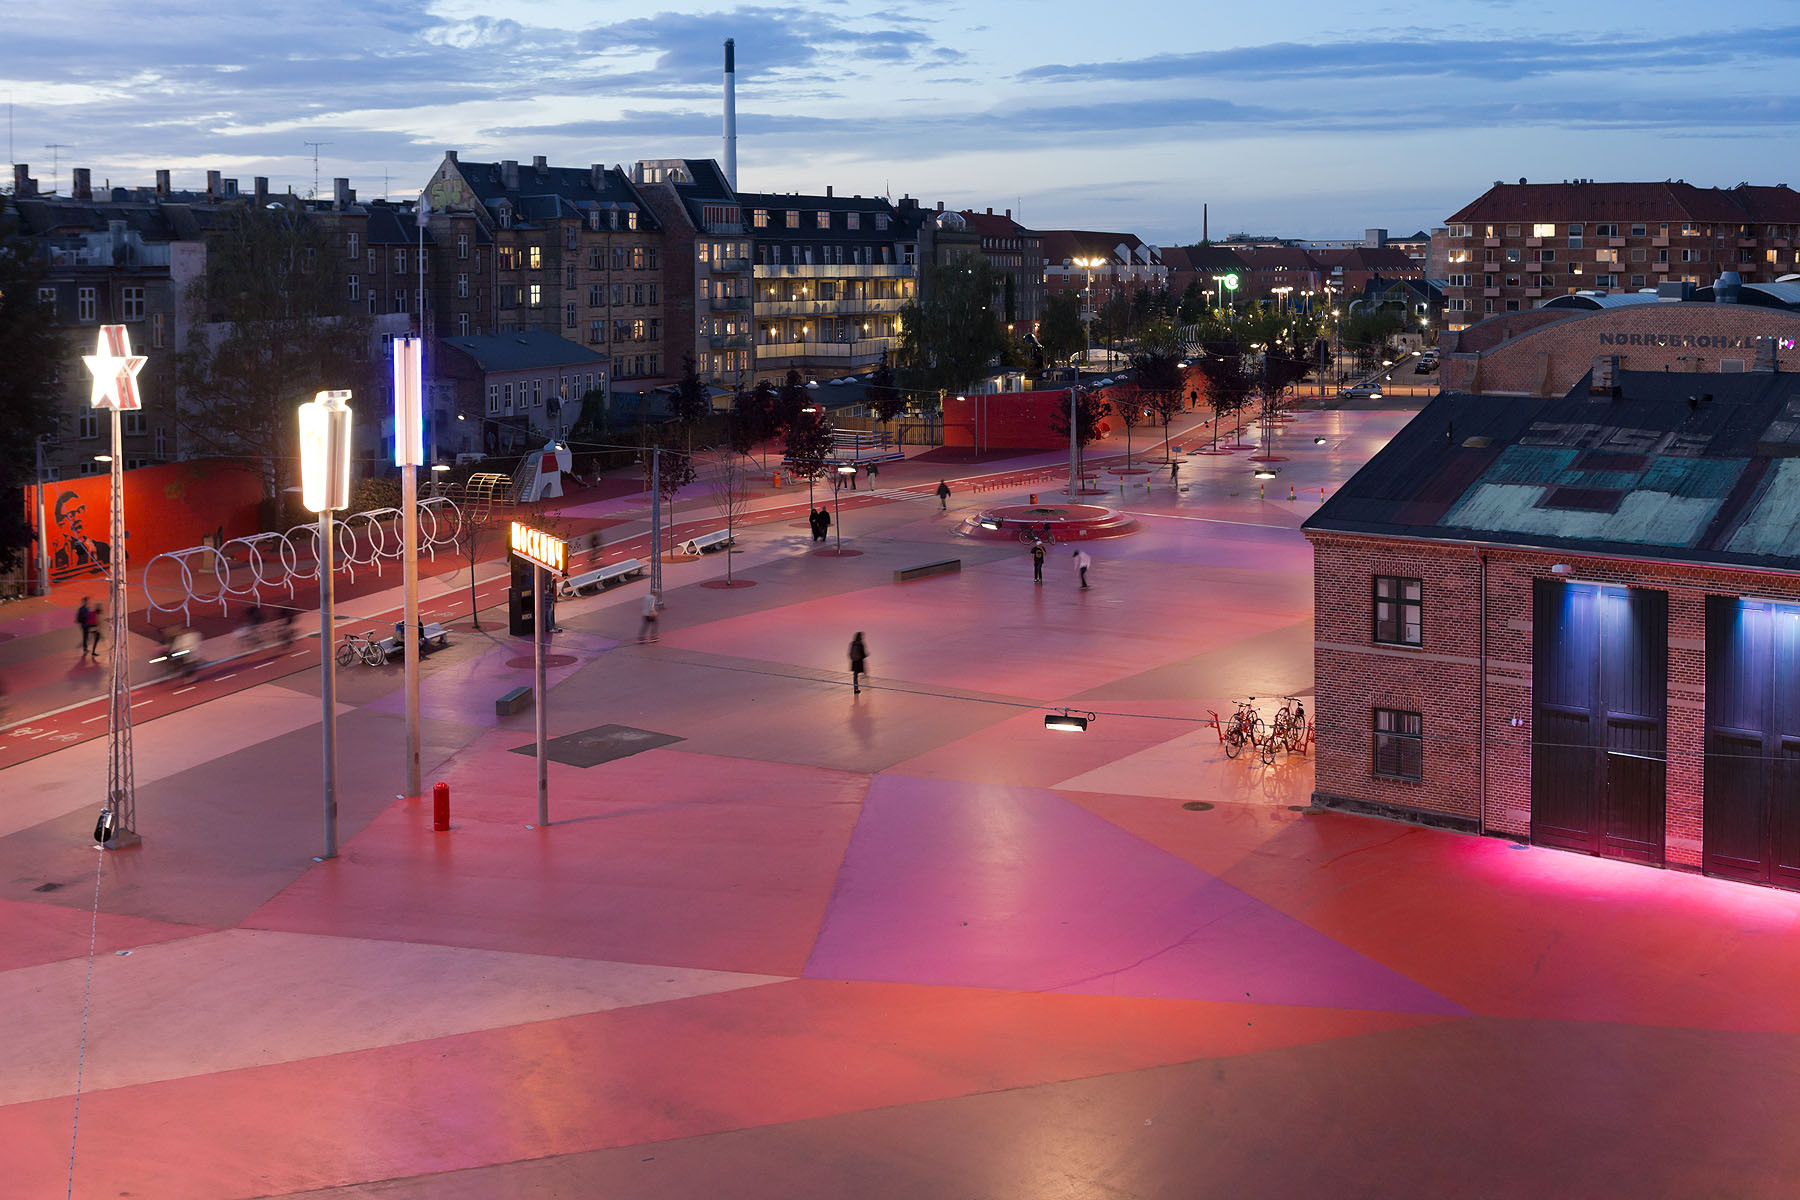 Superkilen / Topotek 1 + BIG Architects + Superflex, © Iwan Baan